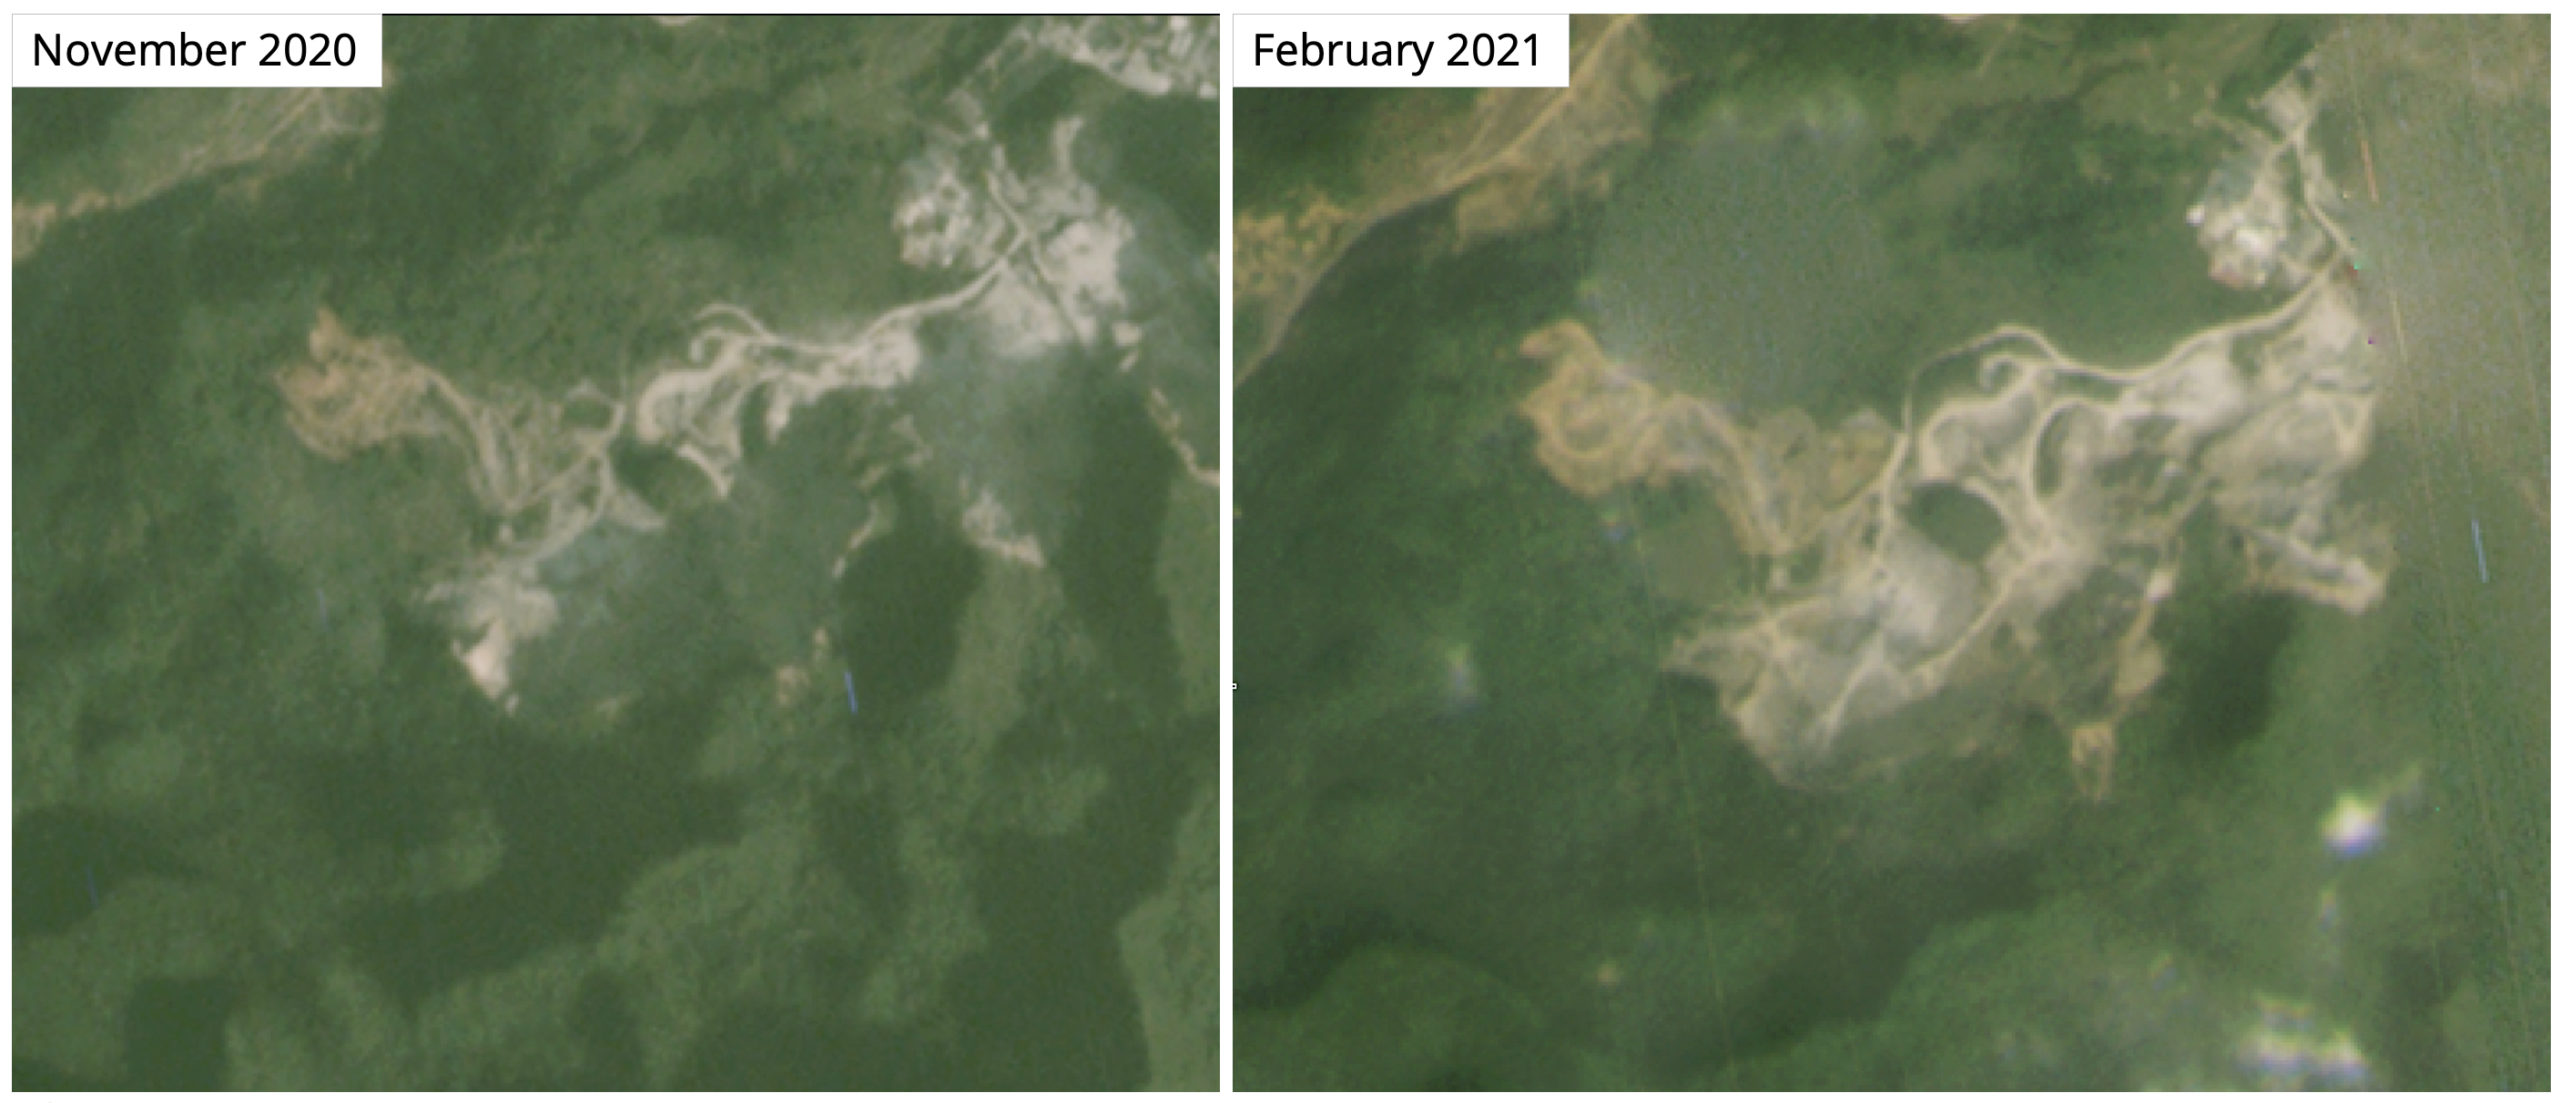 Satellite imagery shows what appears to be quarrying expanding into an area of primary forest where an estimated 80 Delacour's langurs are thought to live.